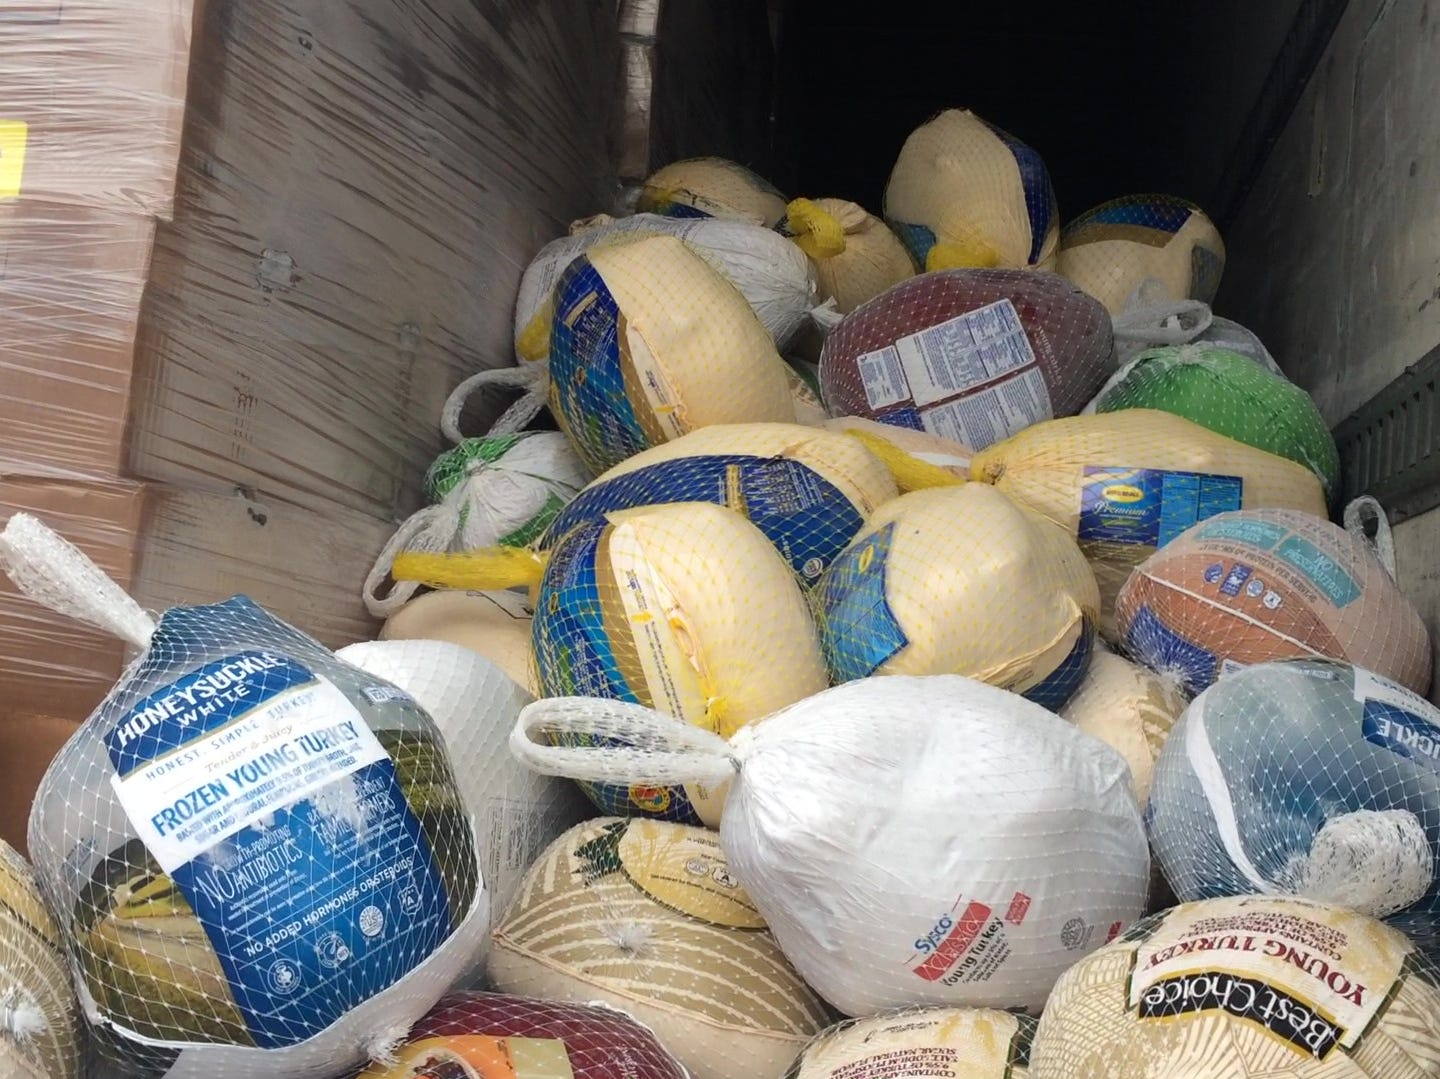 The hundreds of donated turkeys to be given out Monday.